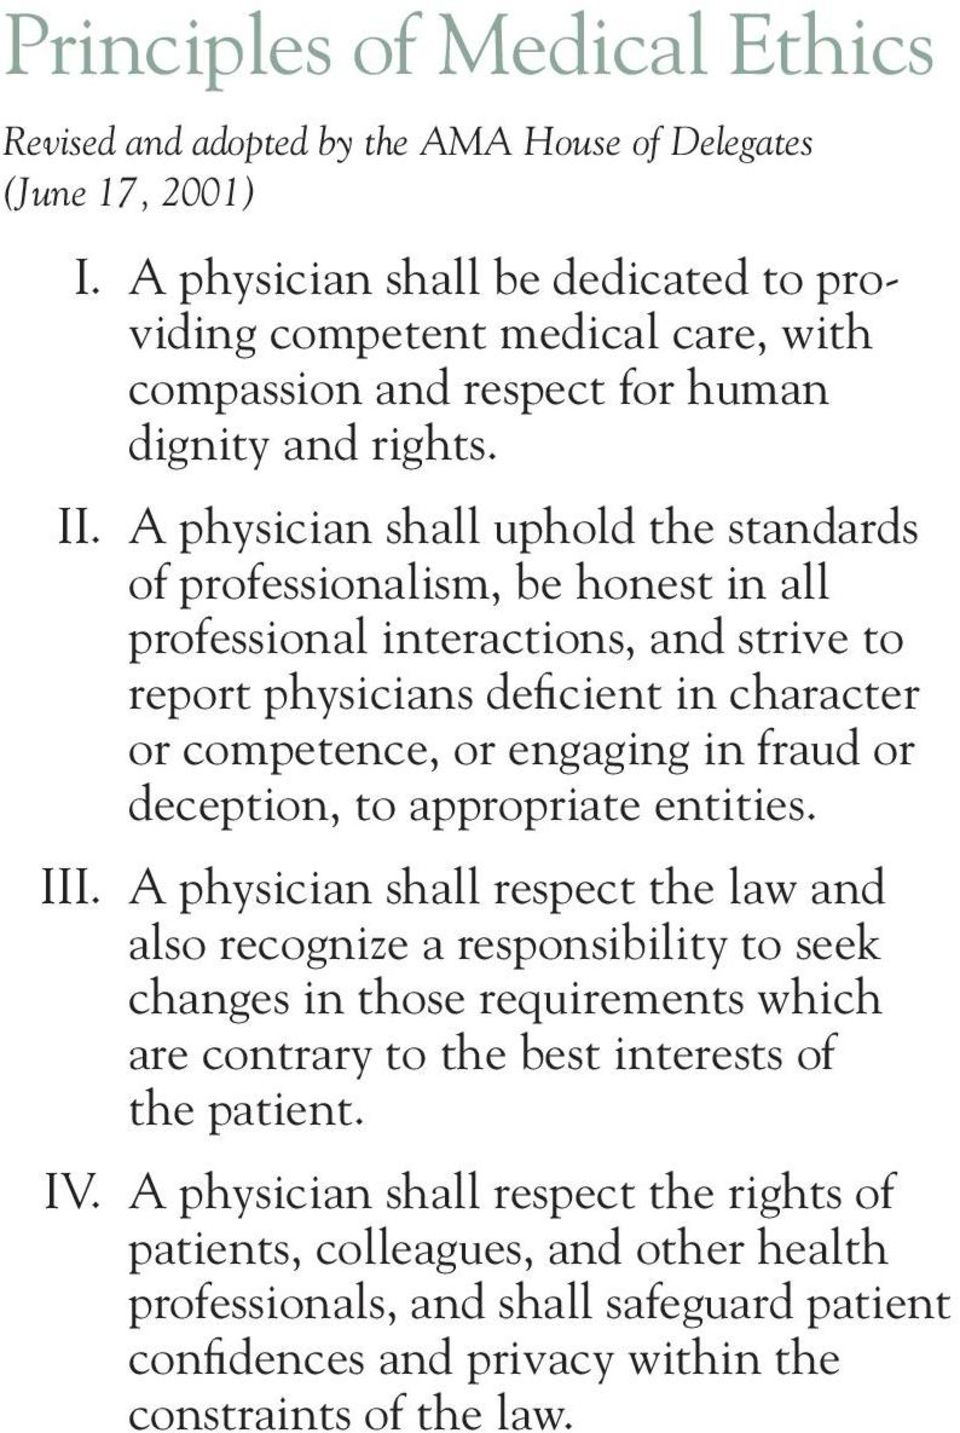 A physician shall uphold the standards of professionalism, be honest in all professional interactions, and strive to report physicians deficient in character or competence, or engaging in fraud or